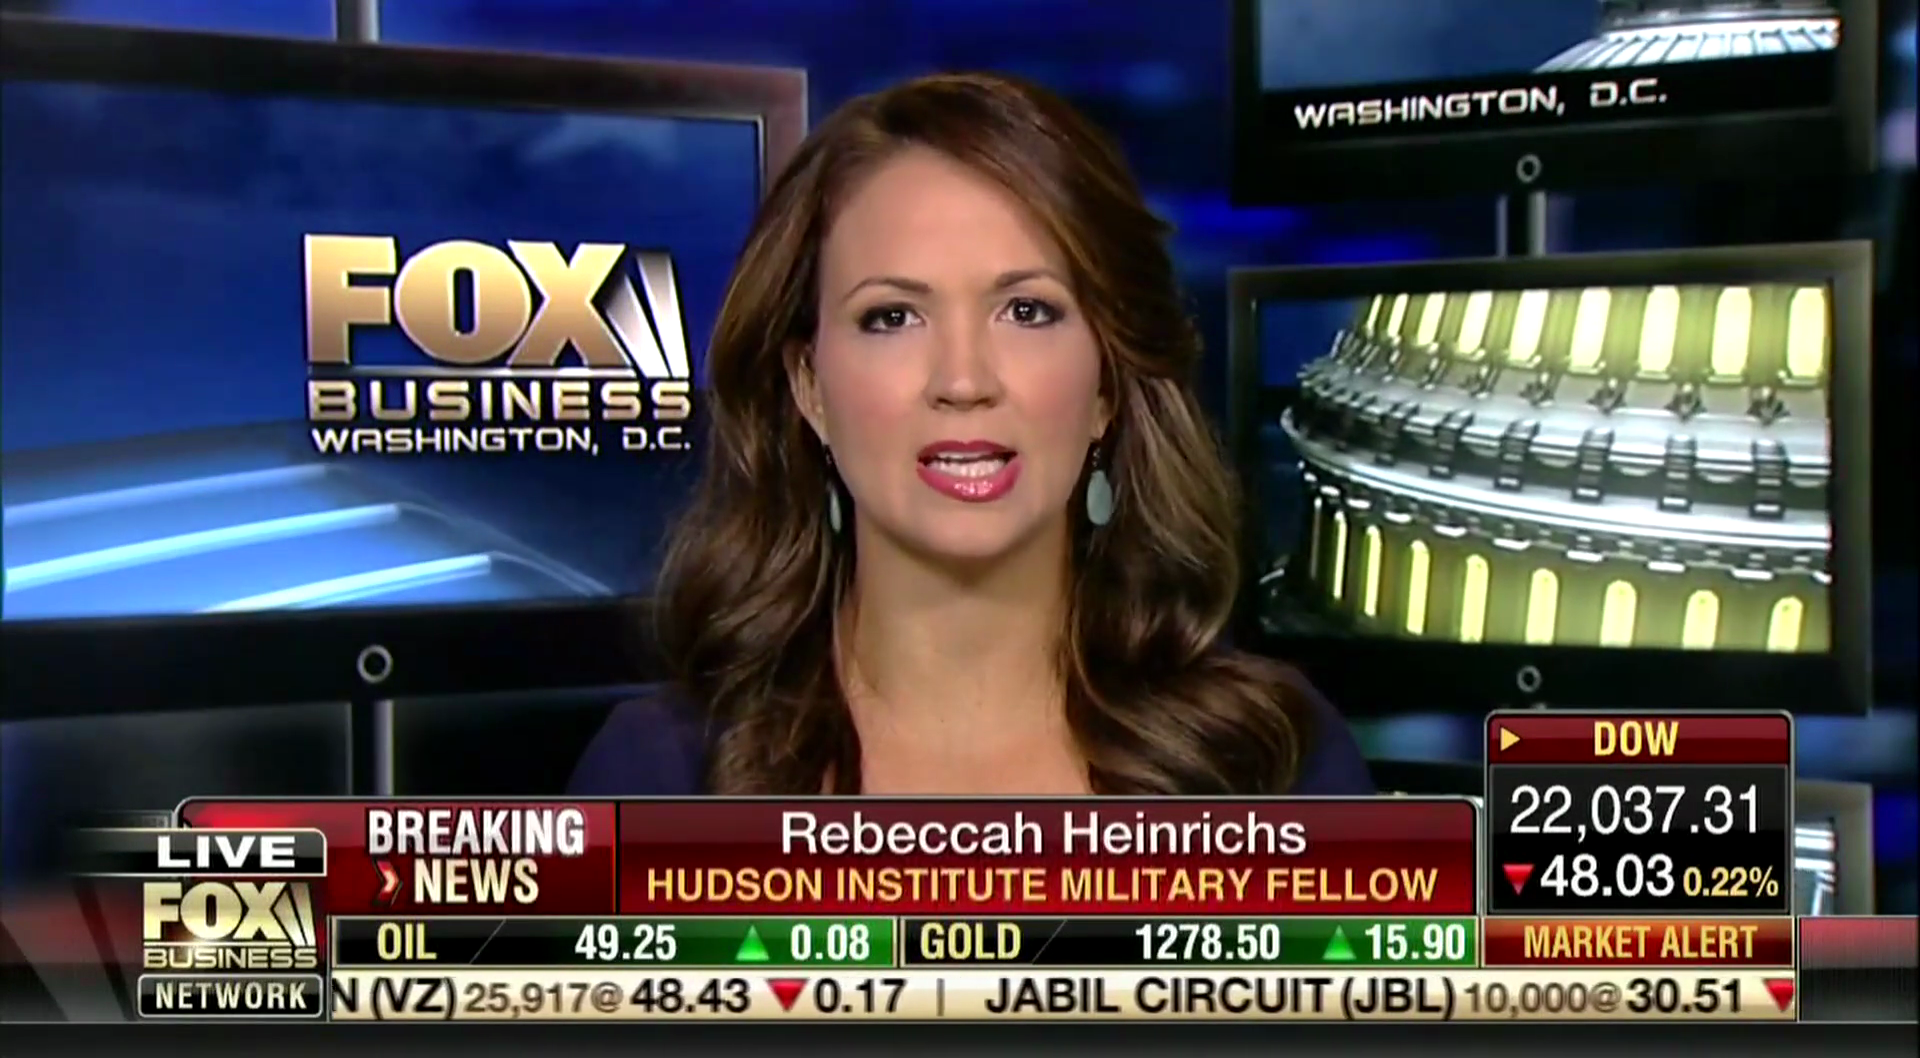 Rebeccah Heinrichs on Fox Business, August 9, 2017